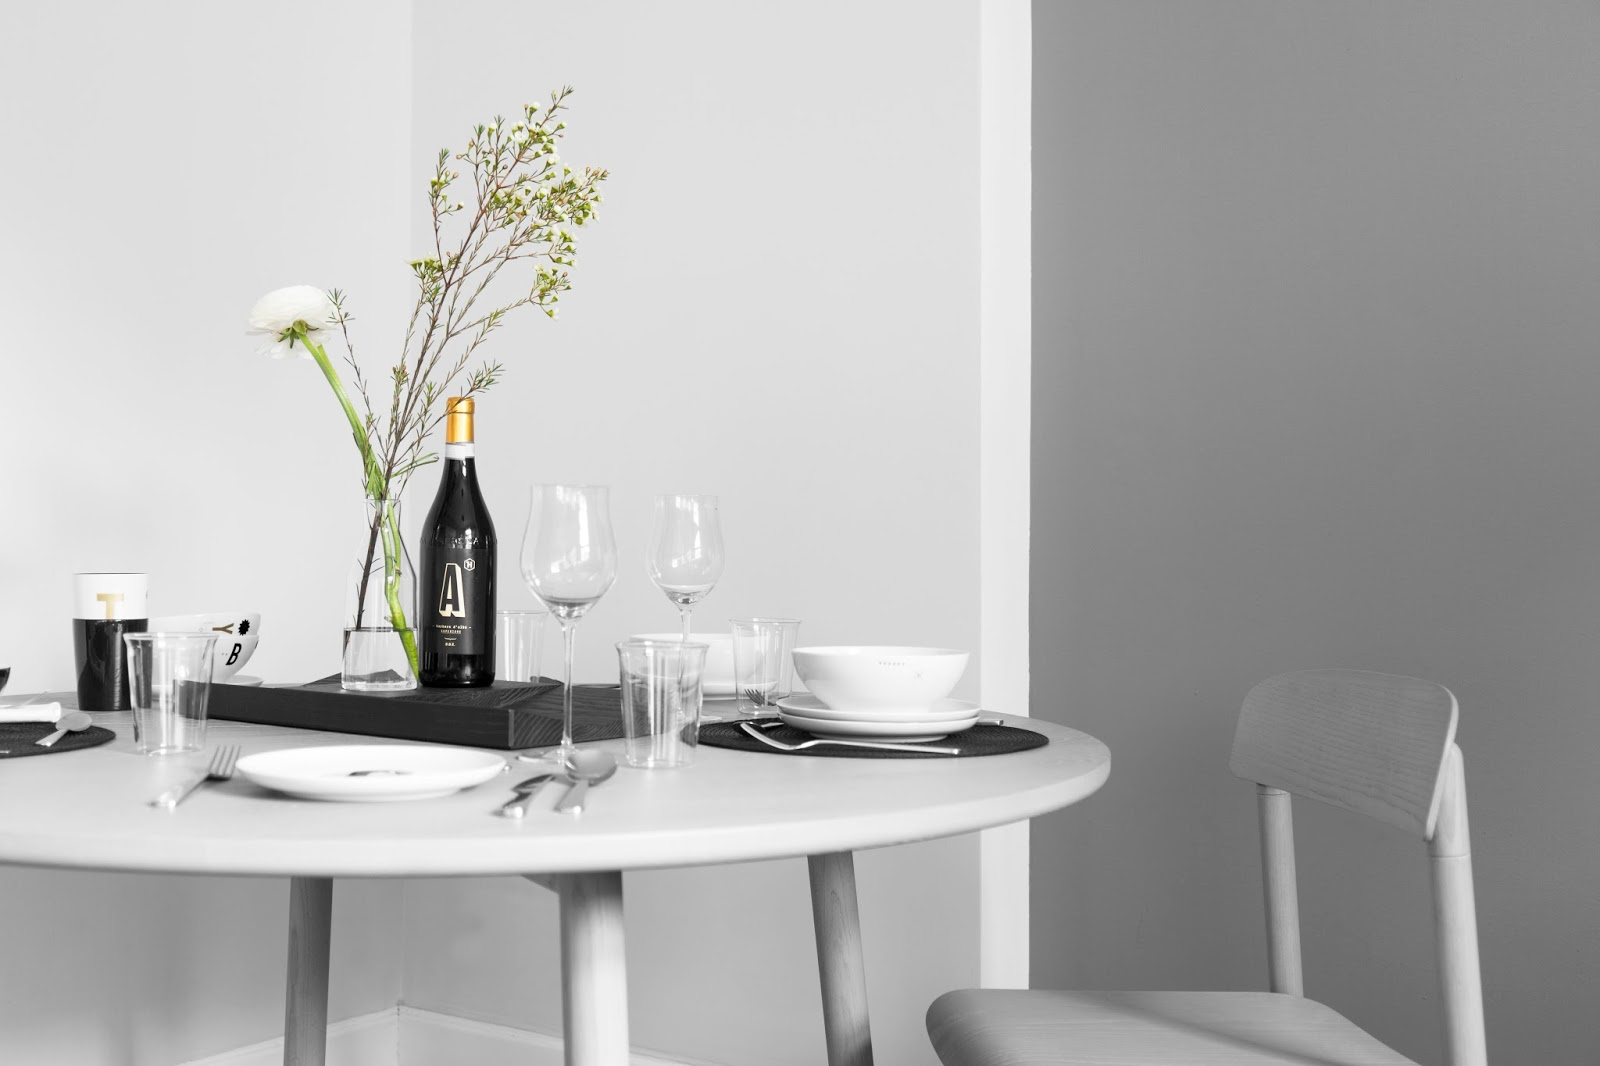 Setting Table by Type Hype | Cleo-inspire Blog